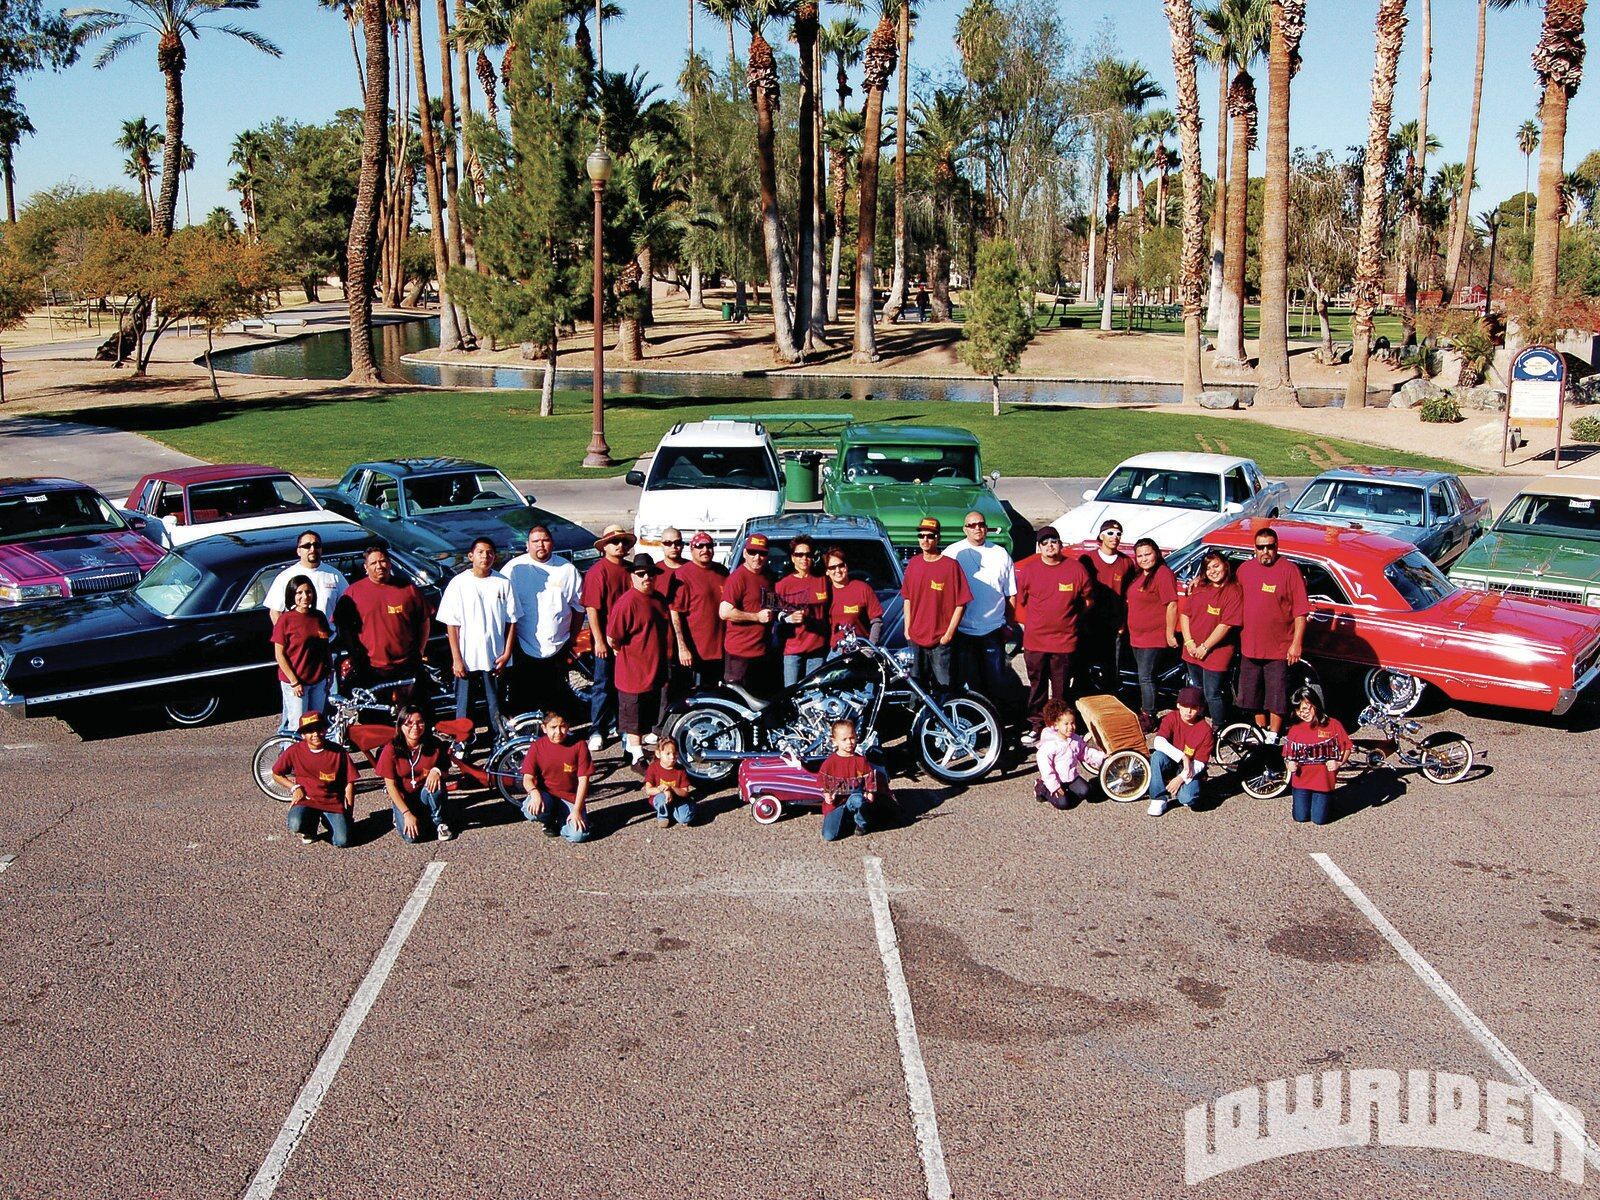 1202-lrmp-03-o-identity-car-club-AZ-club-members1